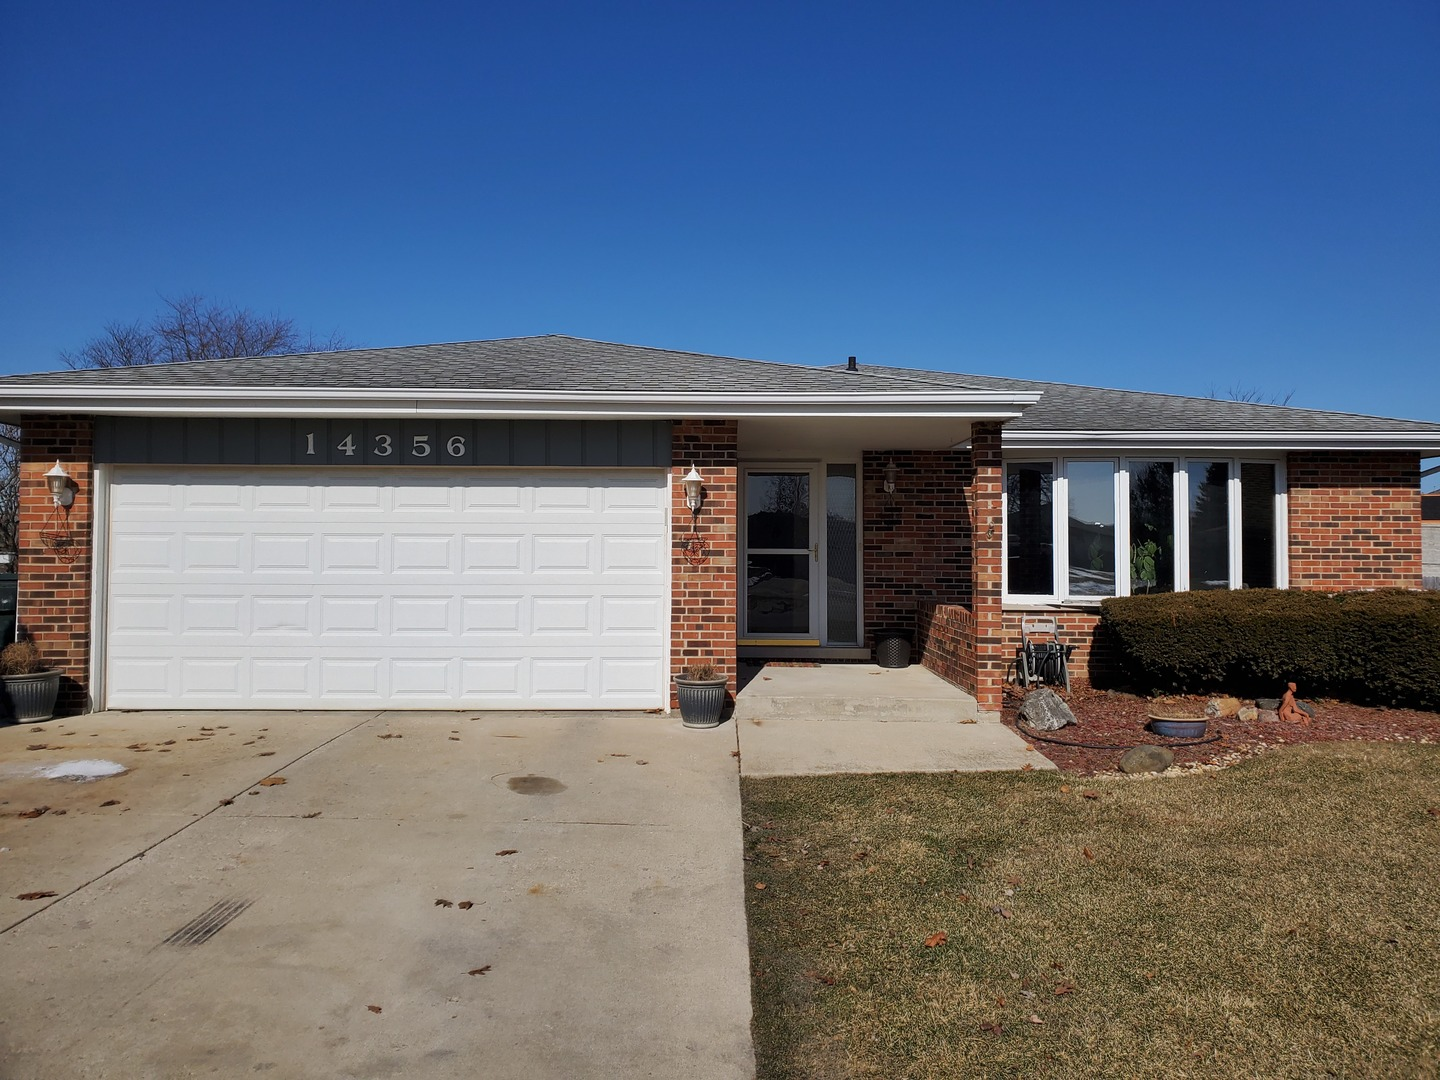 14356 Streamwood Drive, Orland Park in Cook County, IL 60467 Home for Sale